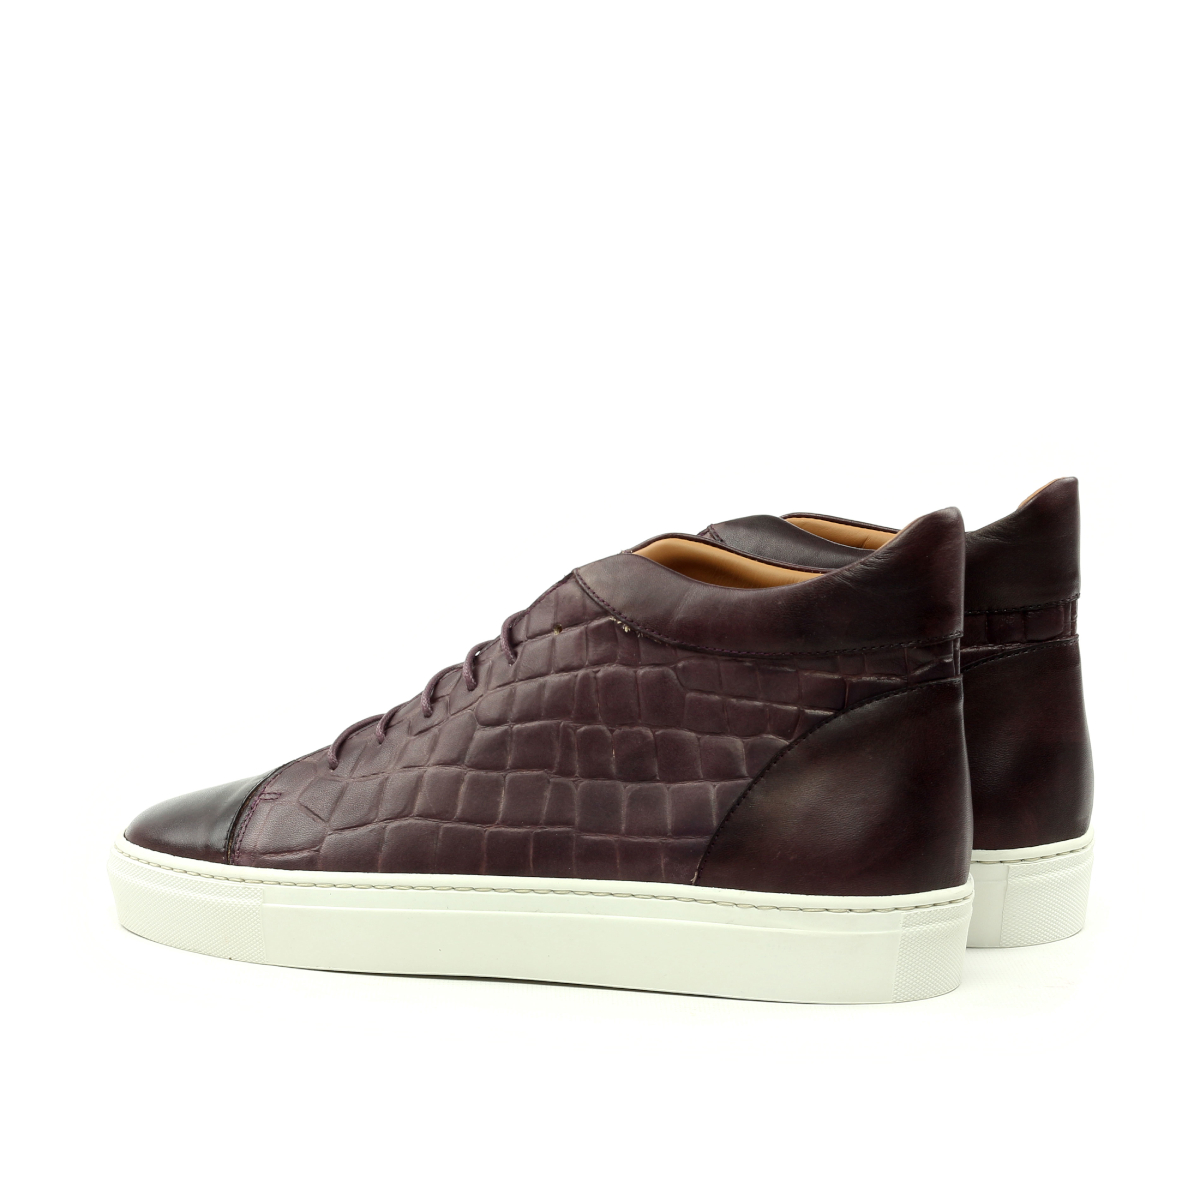 Brown box calf and faux-croco high-top sneakers